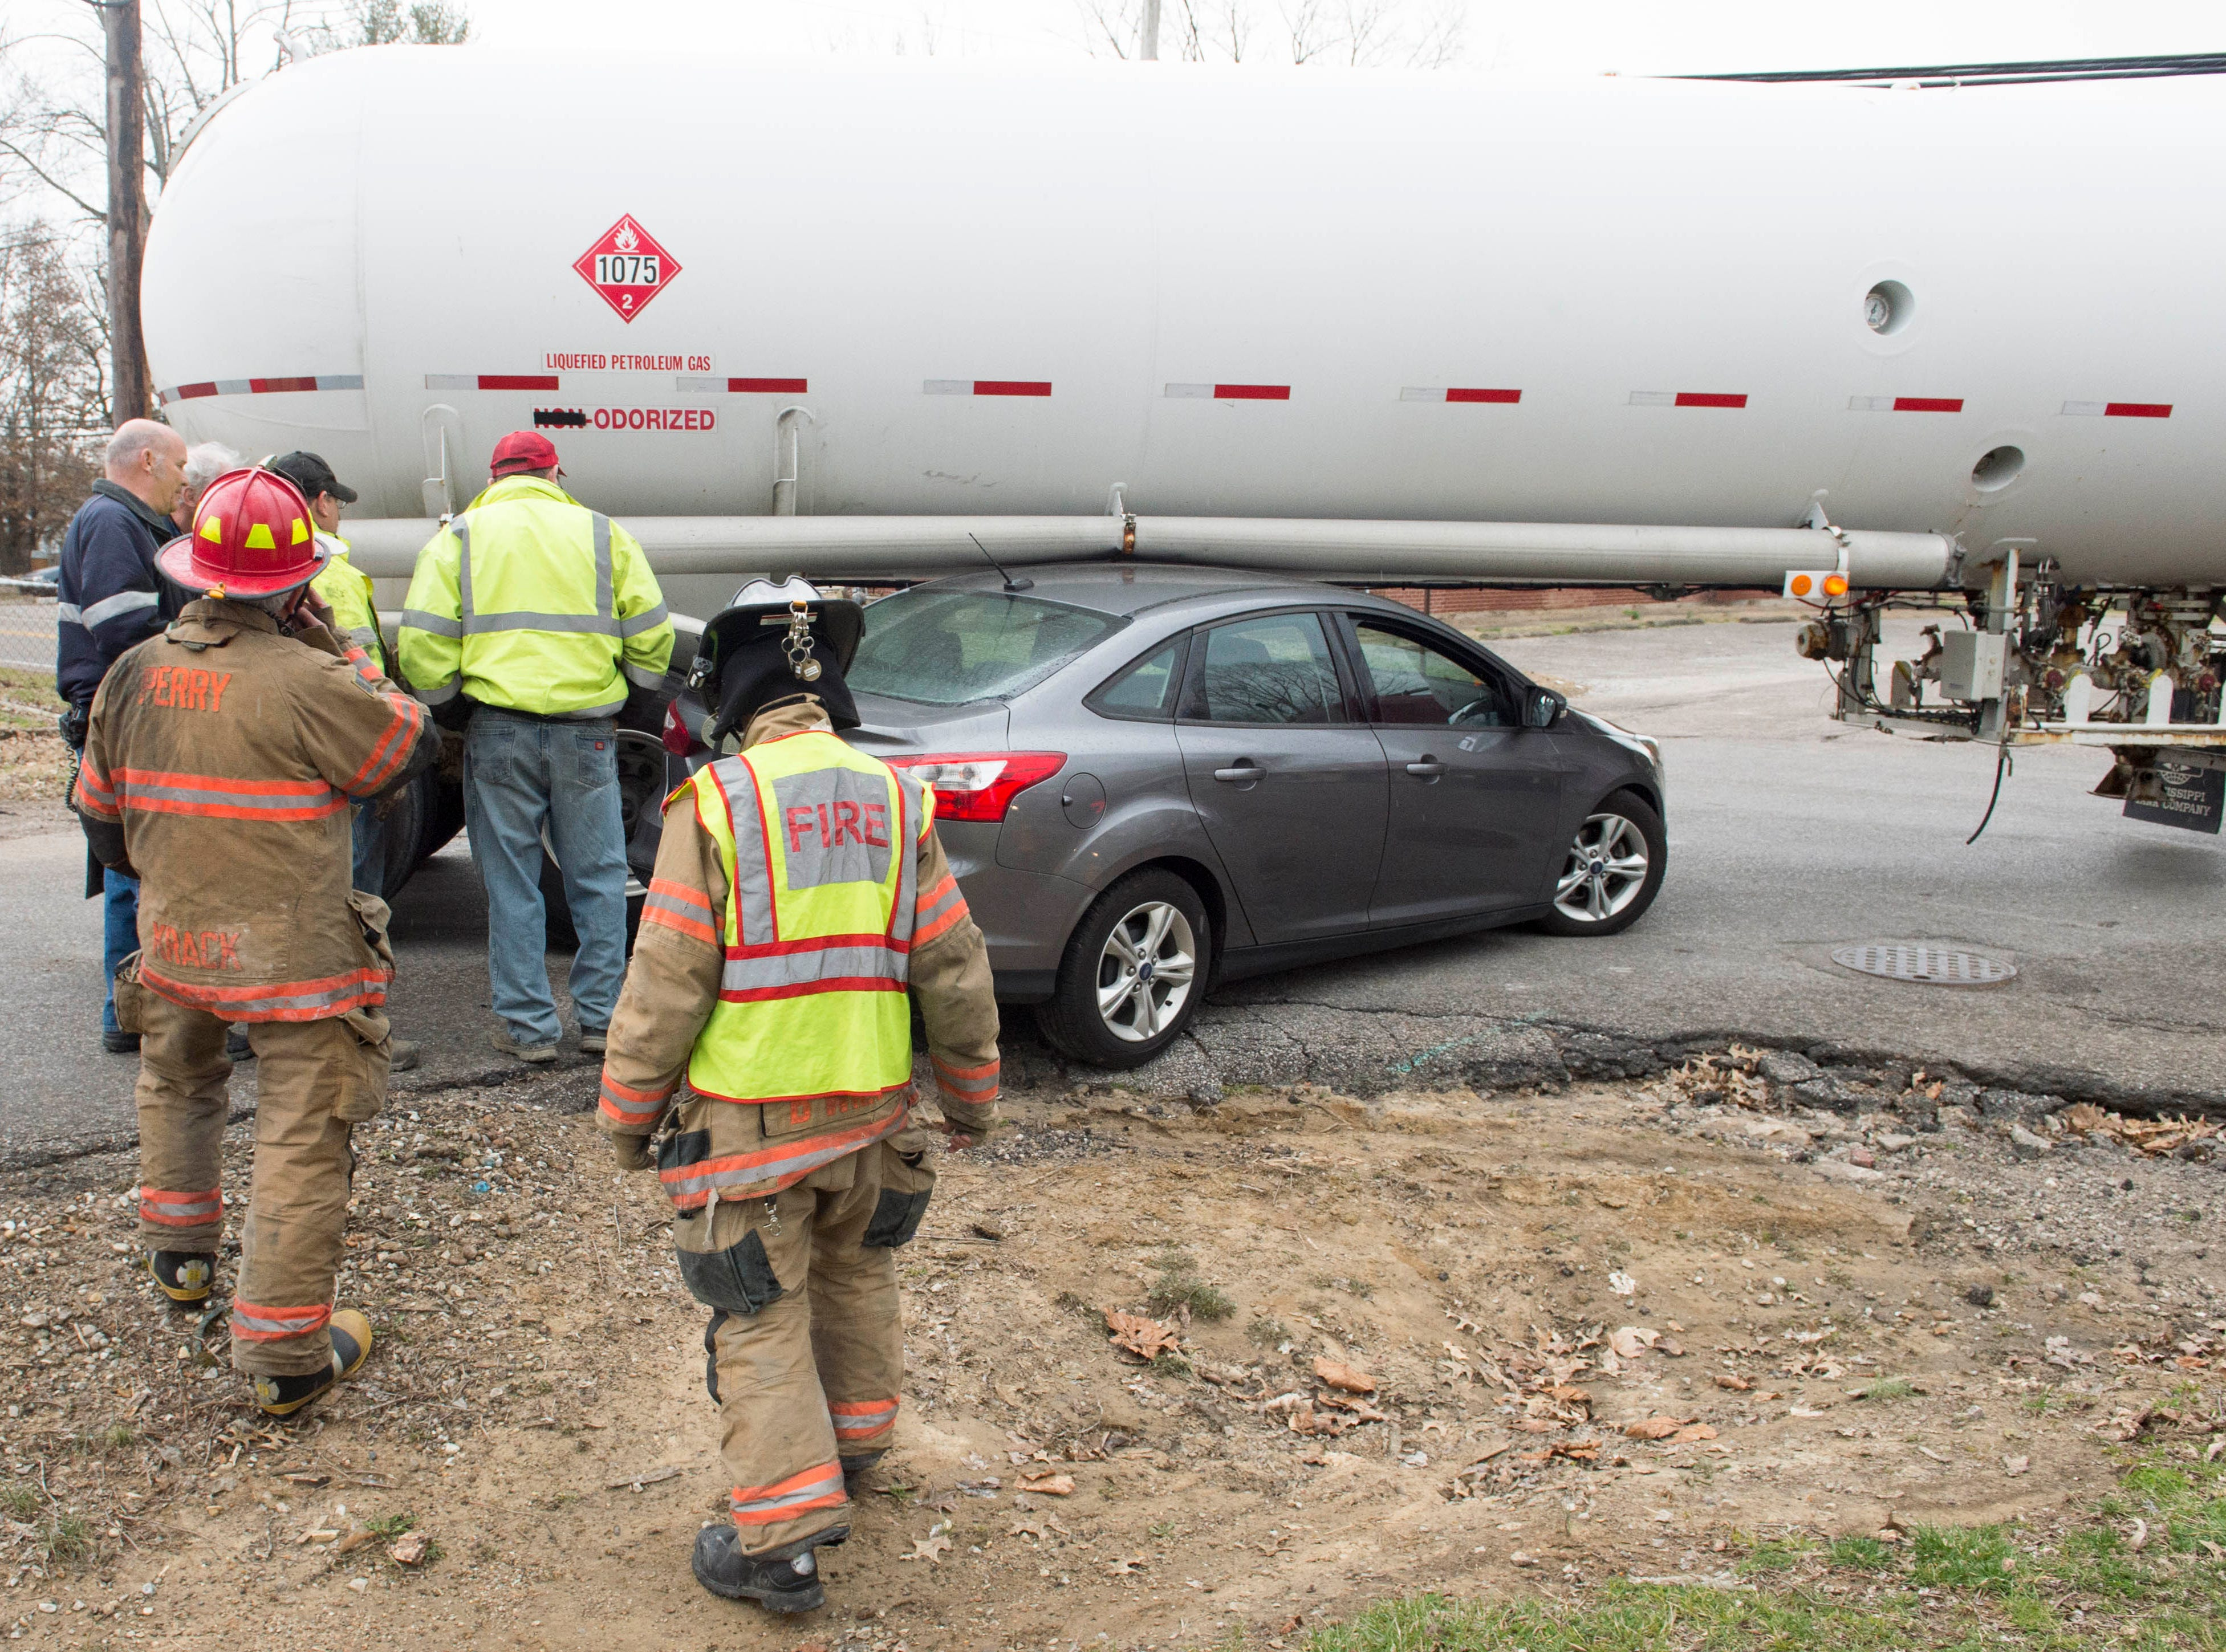 Emergency responders mull over options on how to remove a vehicle from under a tank truck at the intersection of Woods Ave. and Houge Rd. on Evansville's West Side on Wednesday, March 20, 2019. The truck was empty and no one was injured.